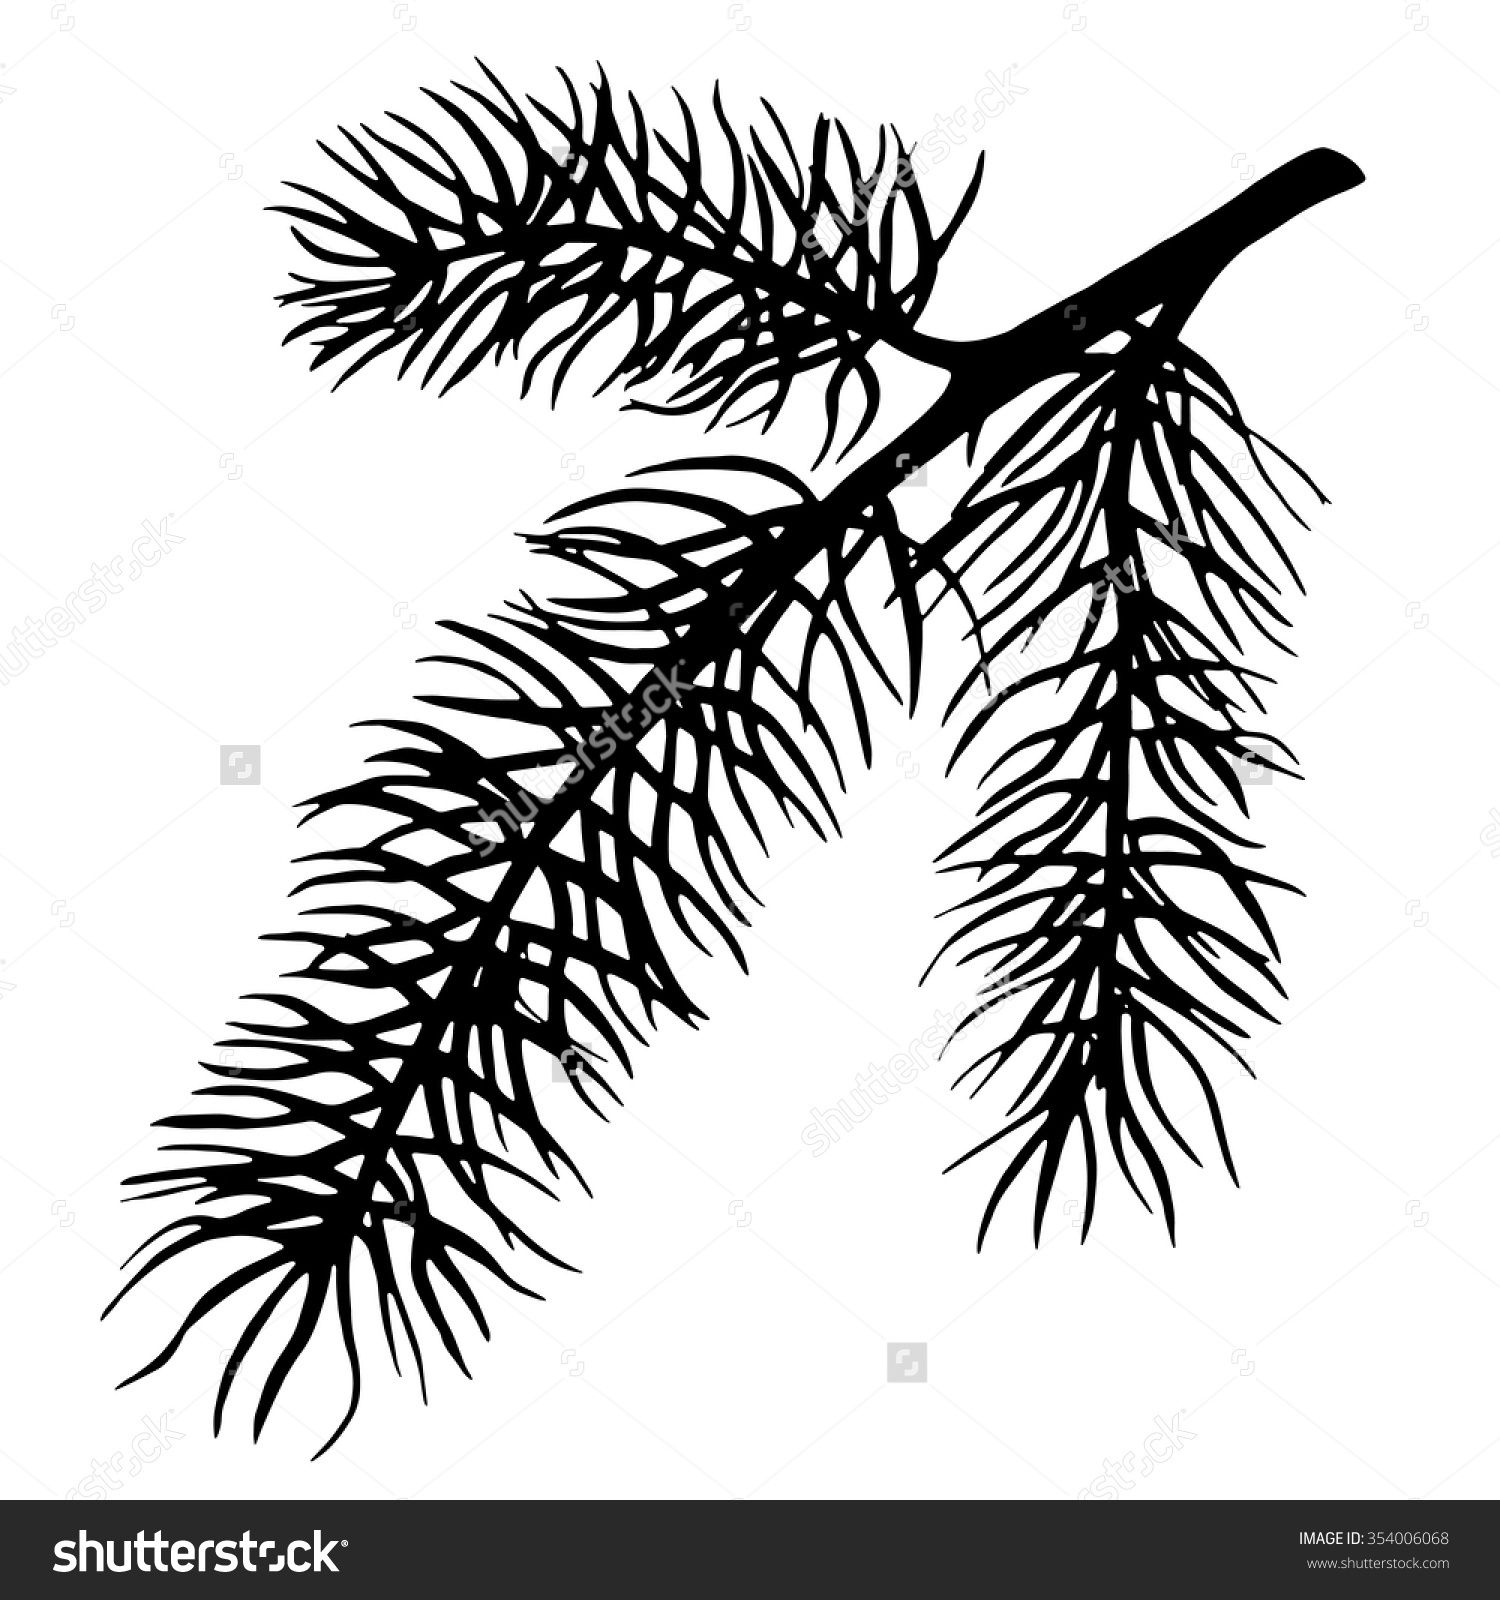 Image result for abstract tree silhouette.